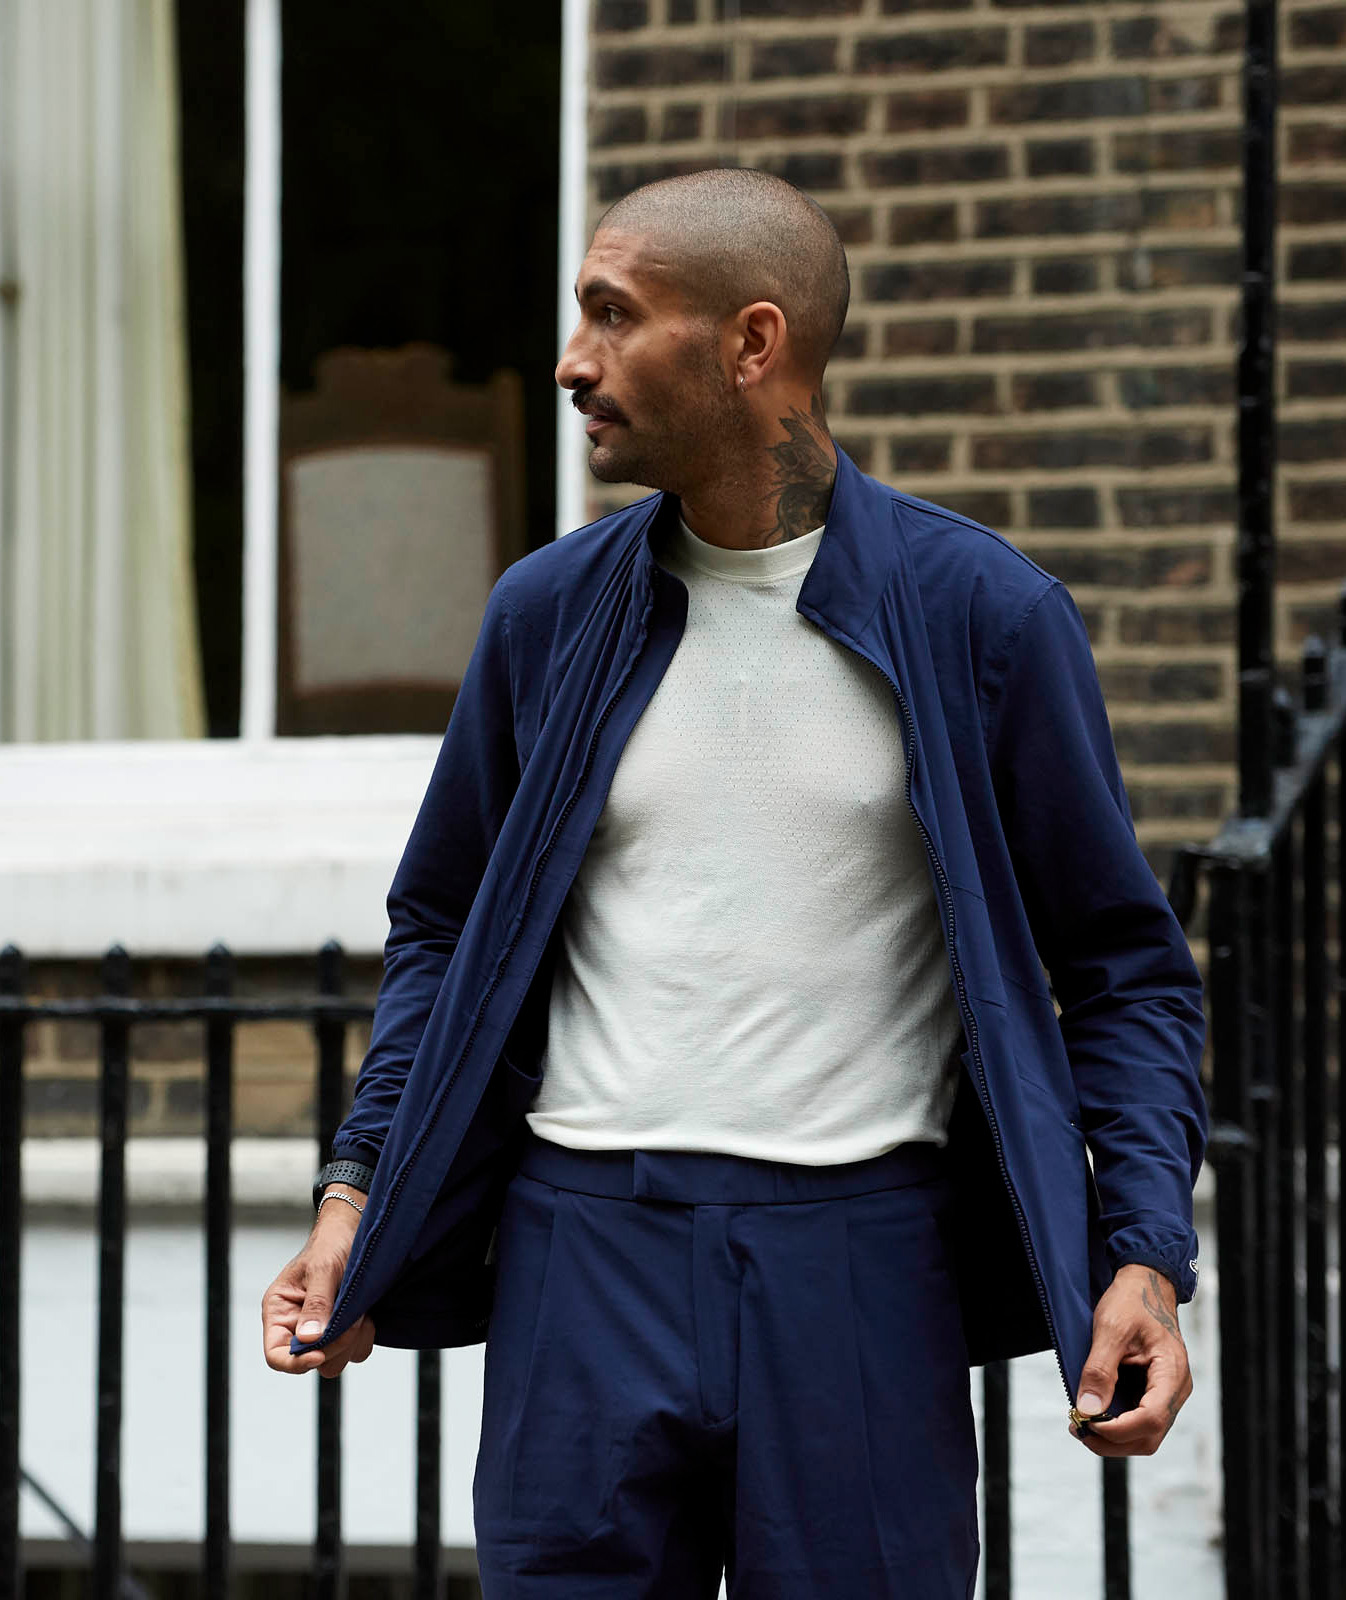 Tracksmith_SS20_London_July20_55.jpg#asset:36523